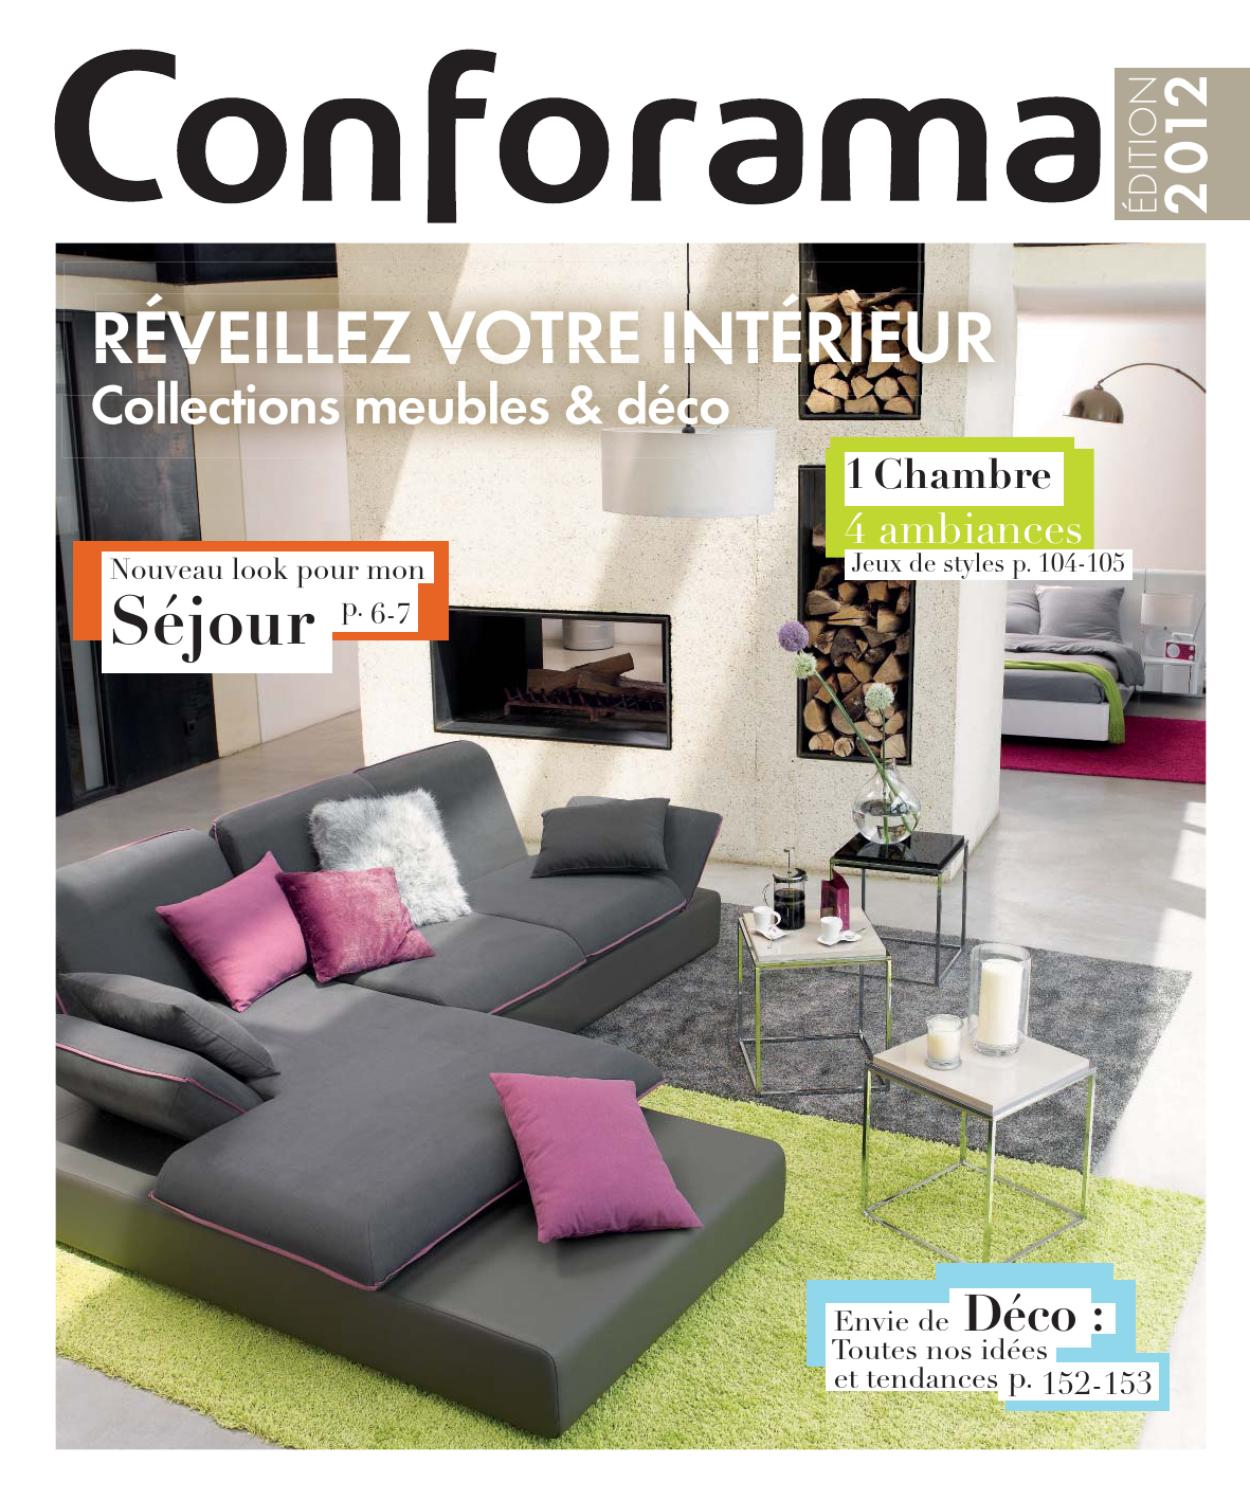 Conforama_Fr-Meubles & Déco2012 By Proomo France - Issuu à Fauteuil Memphis Conforama